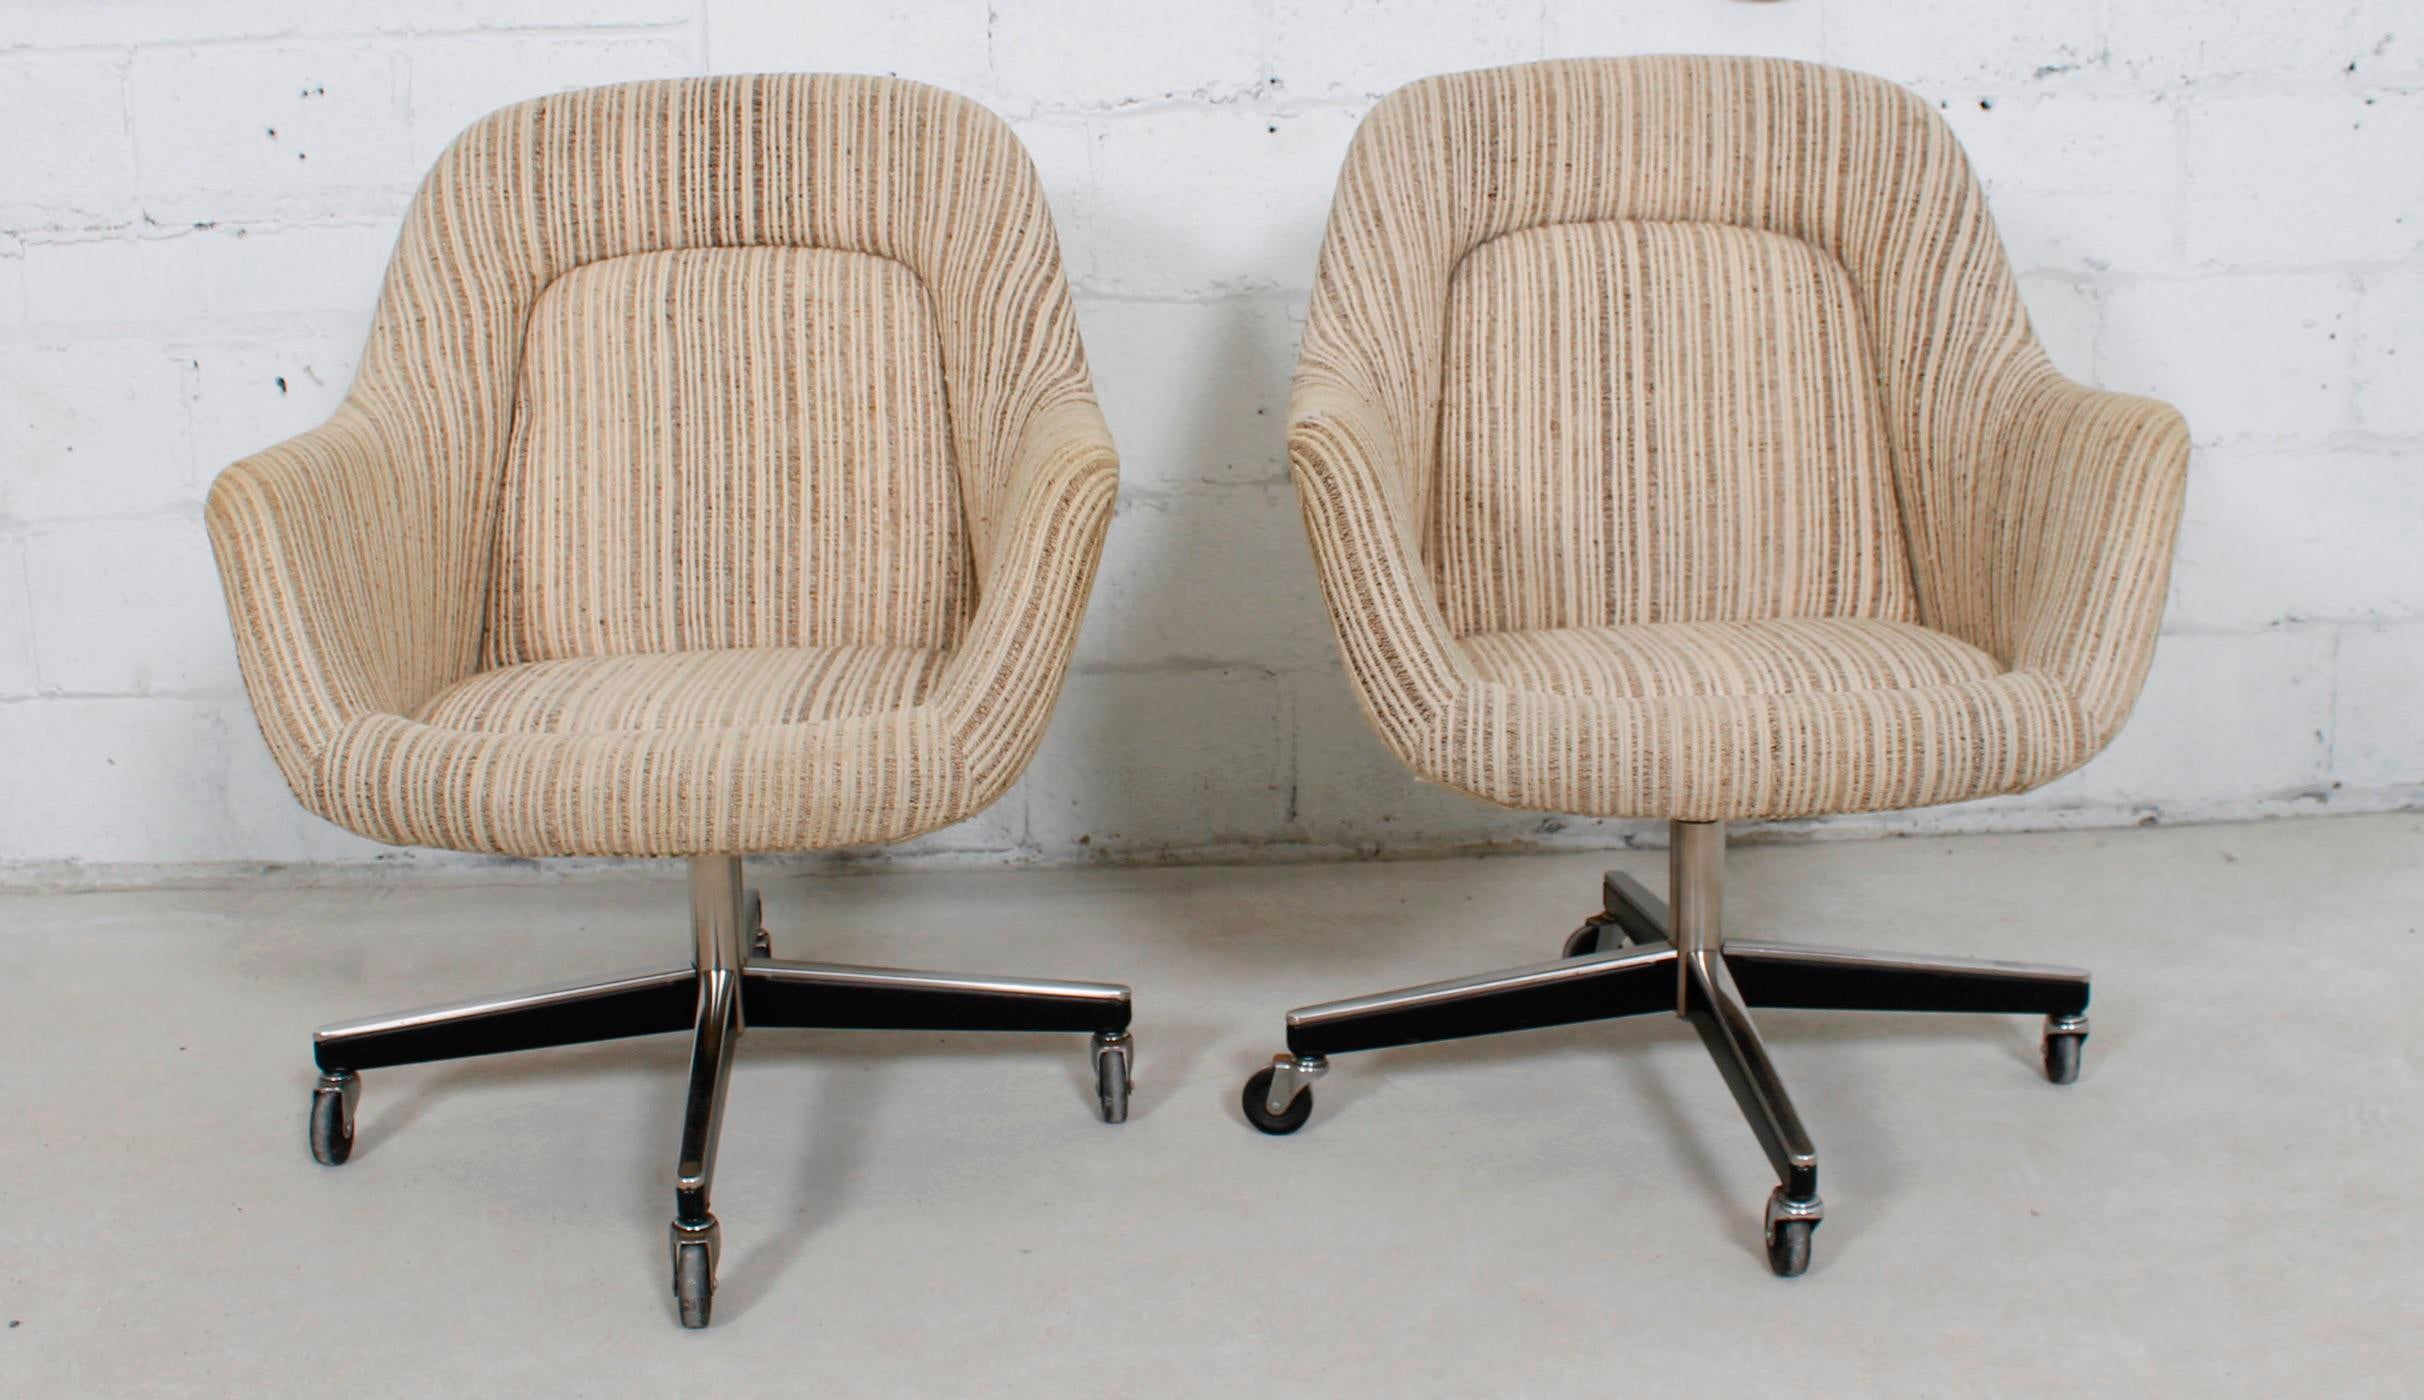 Knoll Upholstered Office Chairs On Casters   A Pair   Image 2 Of 11